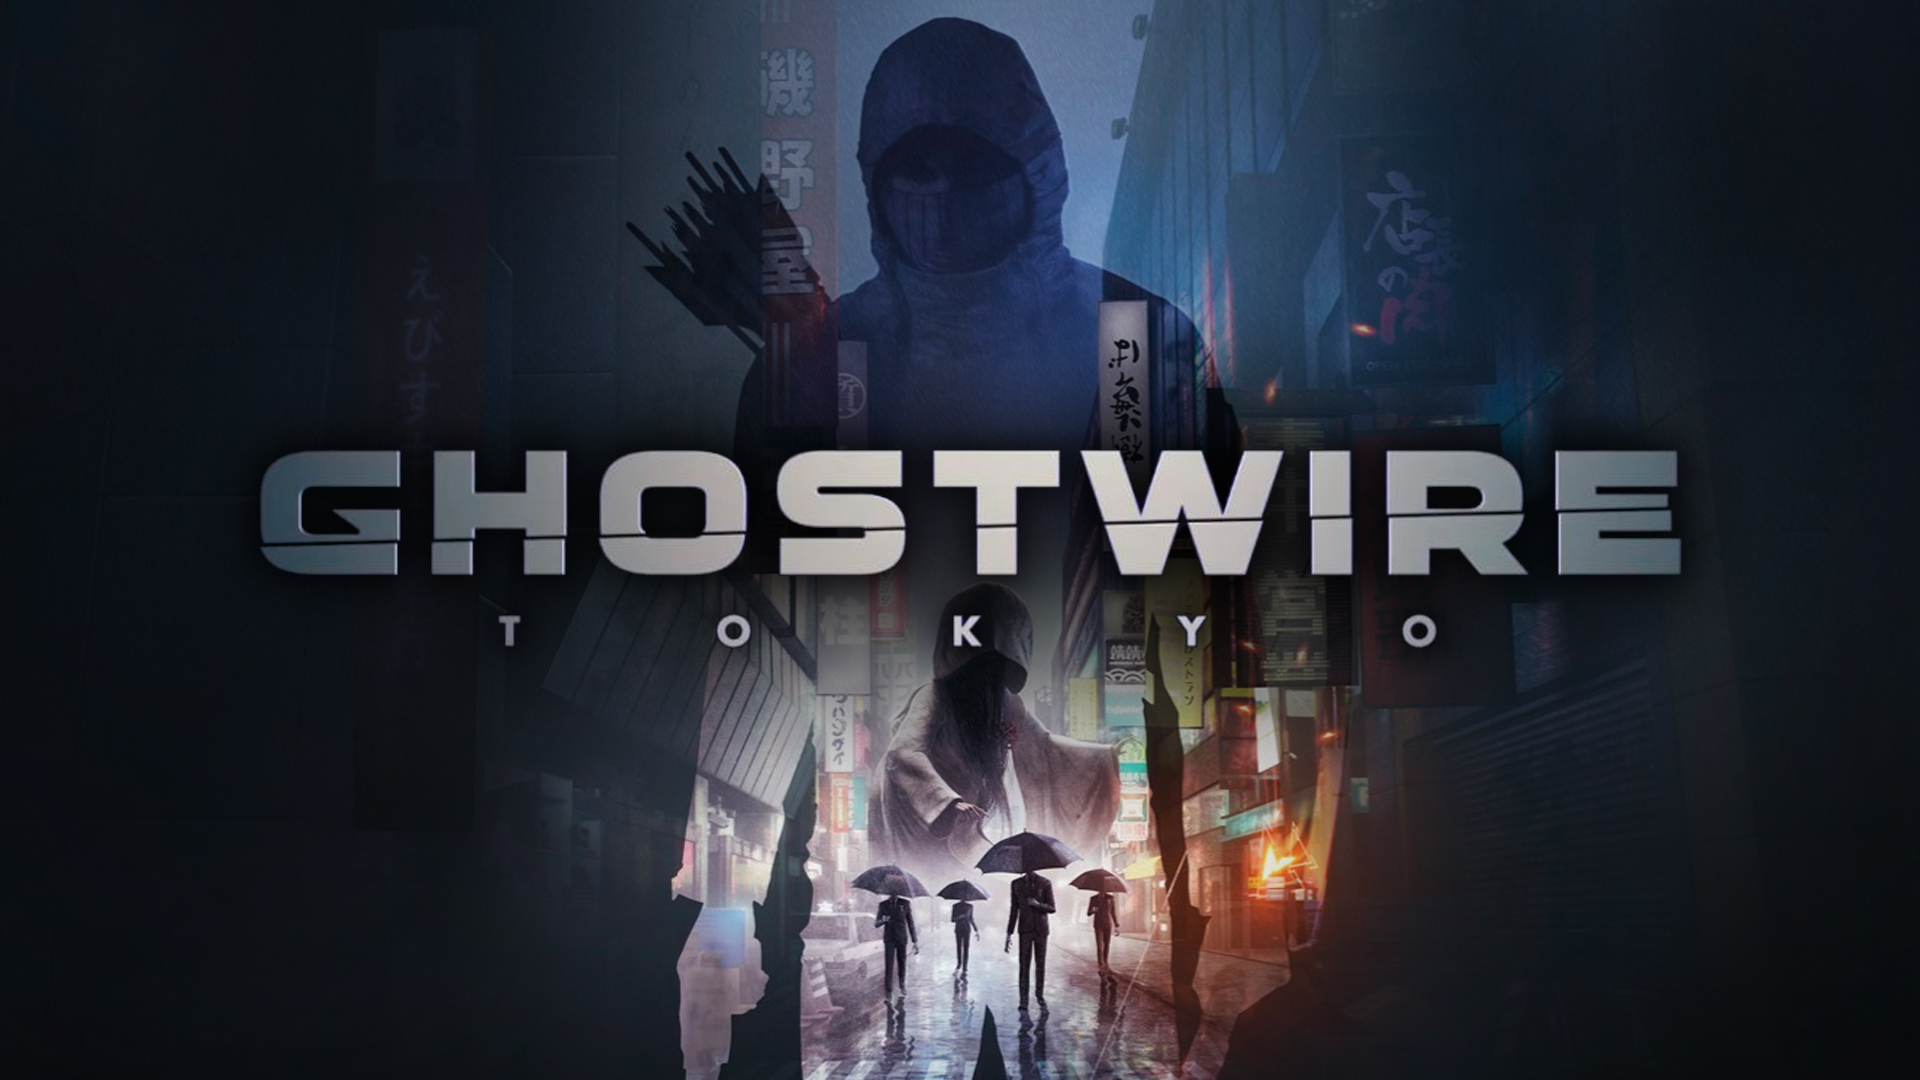 ghostwire tokyo video game wallpaper 72315